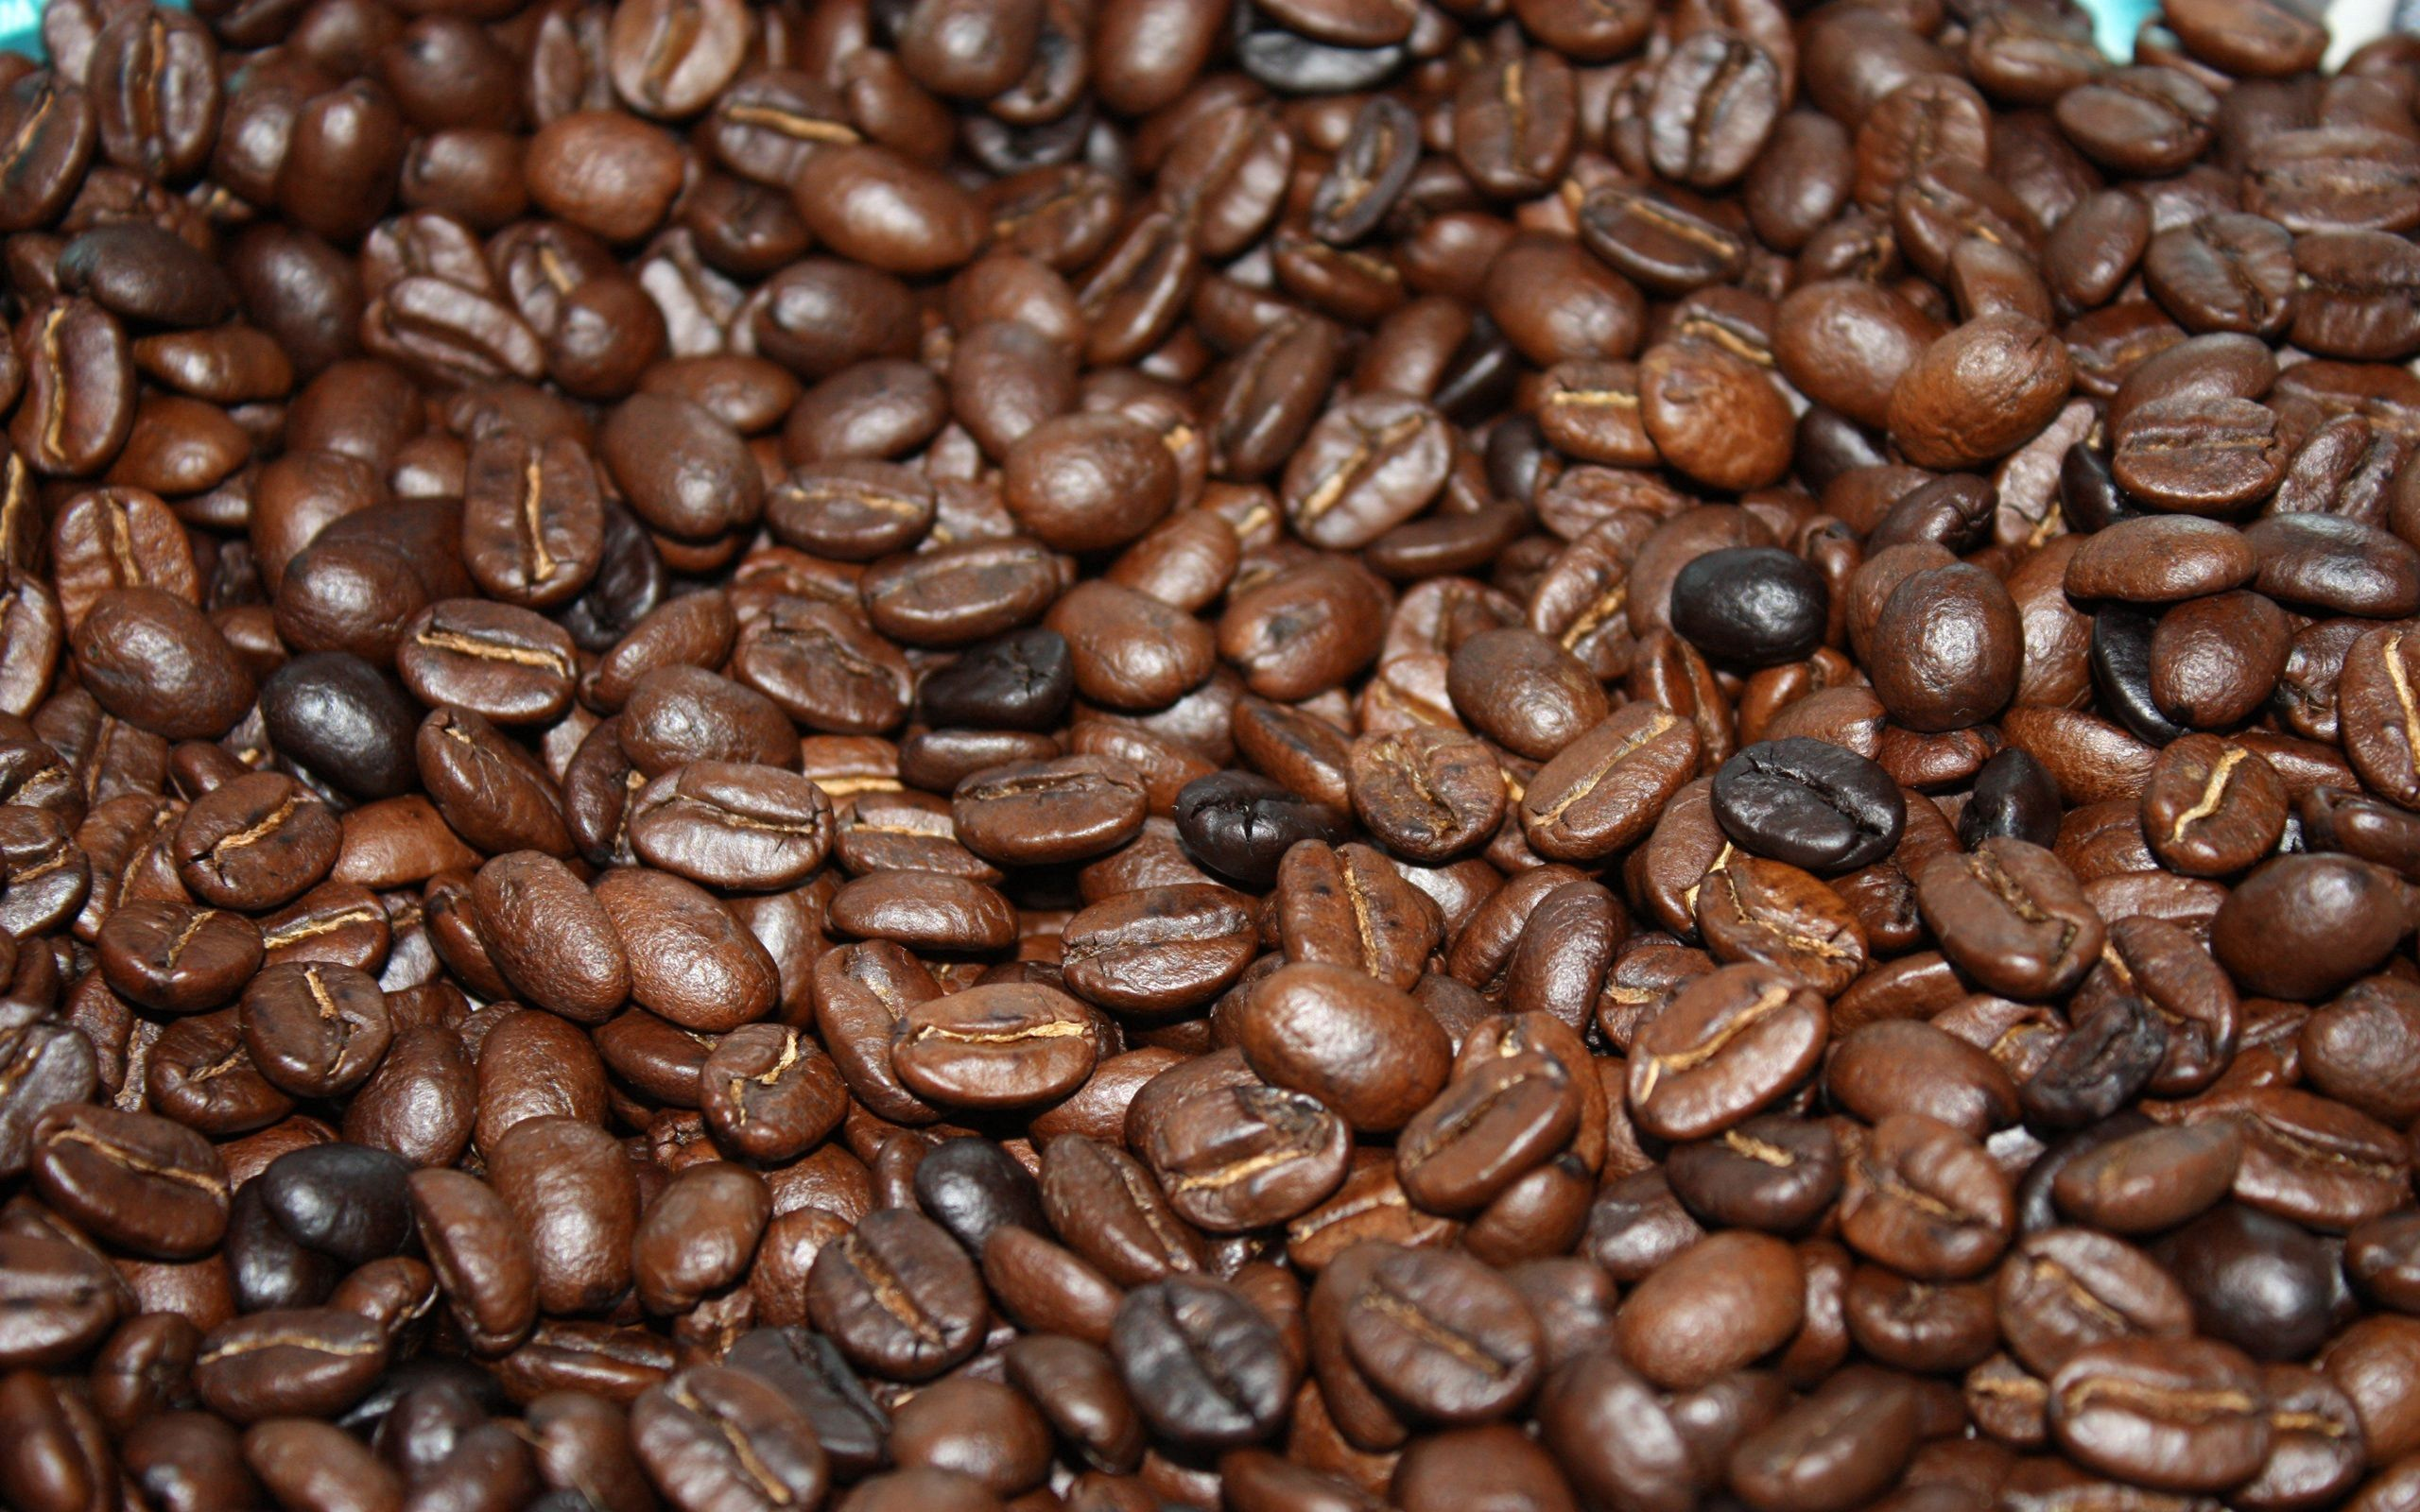 Free wallpaper 149937: Food, Coffee, Grains, Grain, Fried download pictures for cellphone